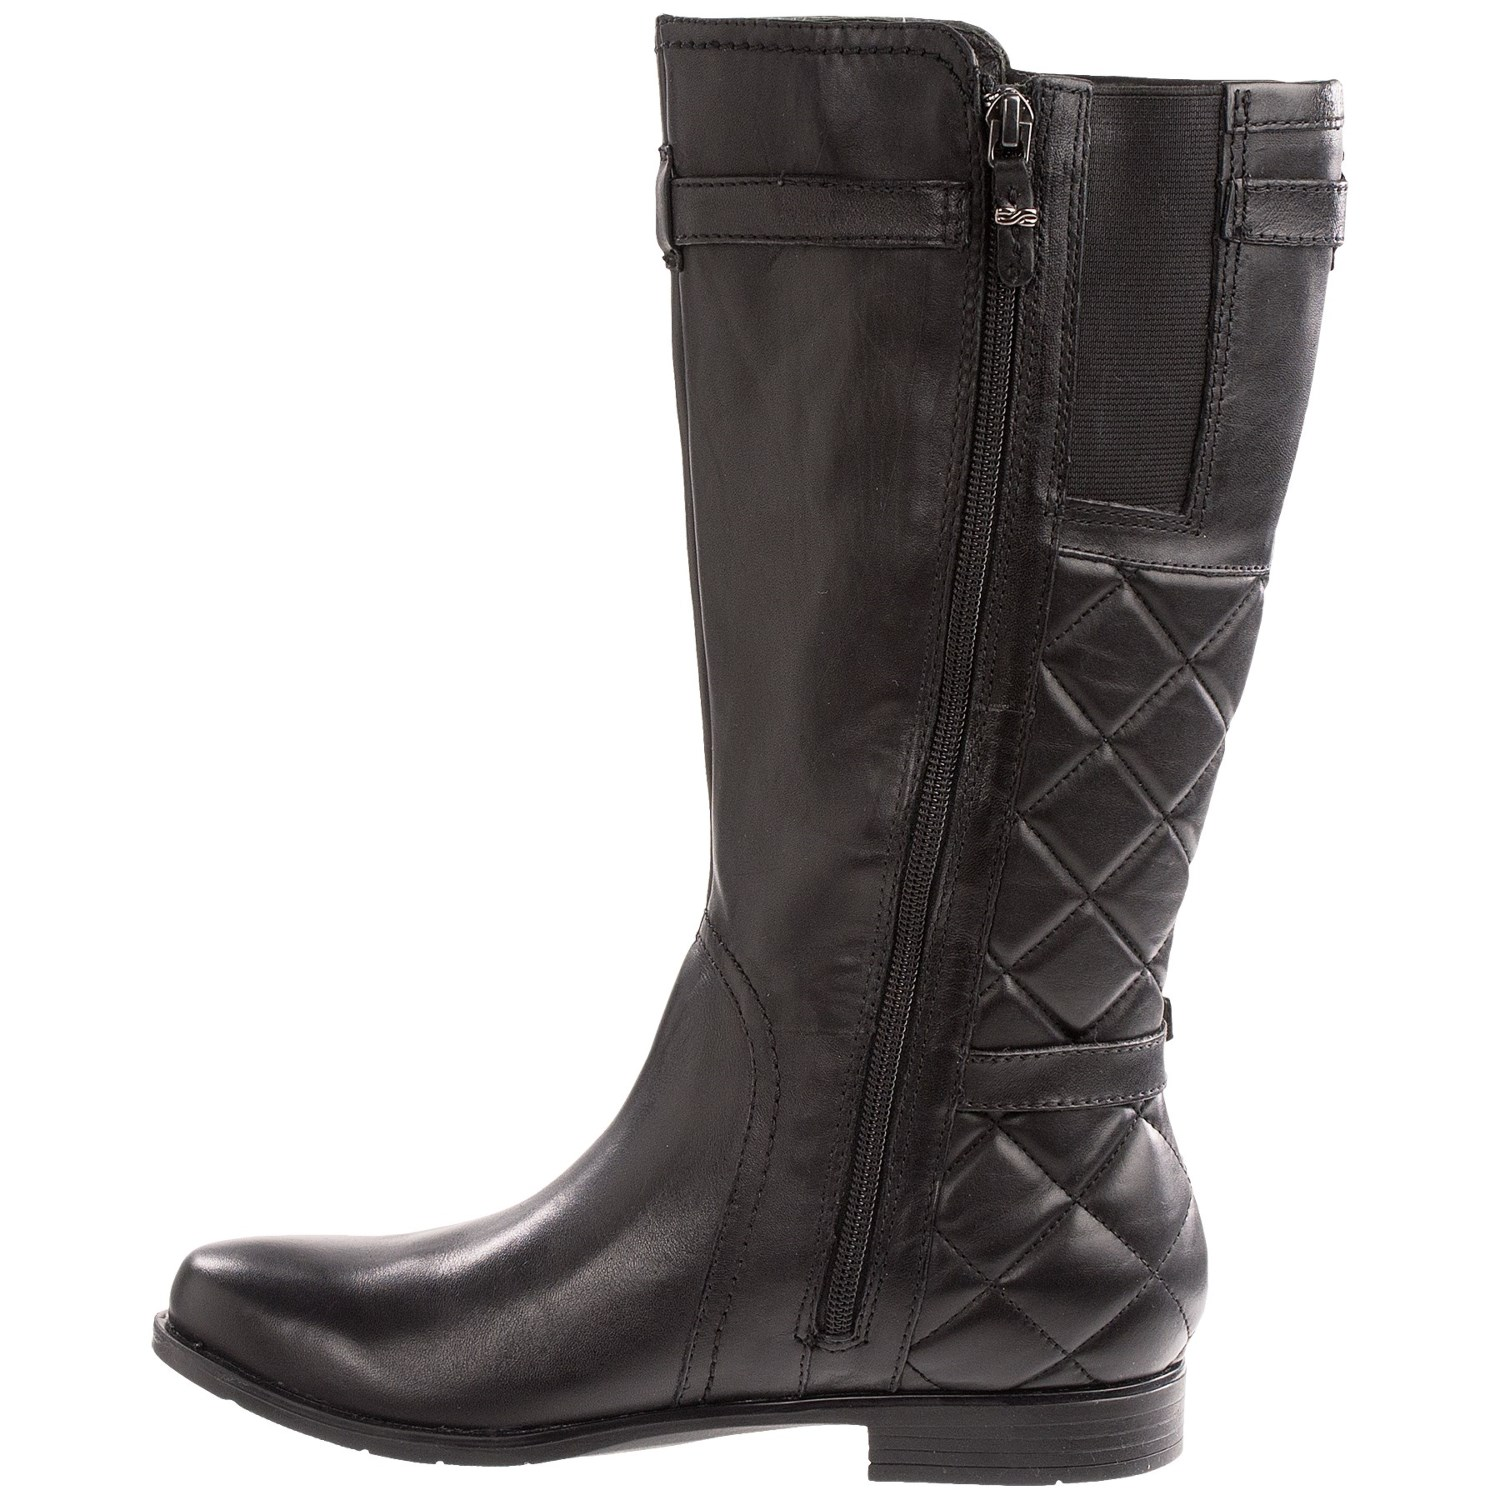 343ed0a84f26 Earthies Sevilla Leather Boots For Women 8903r Save 74